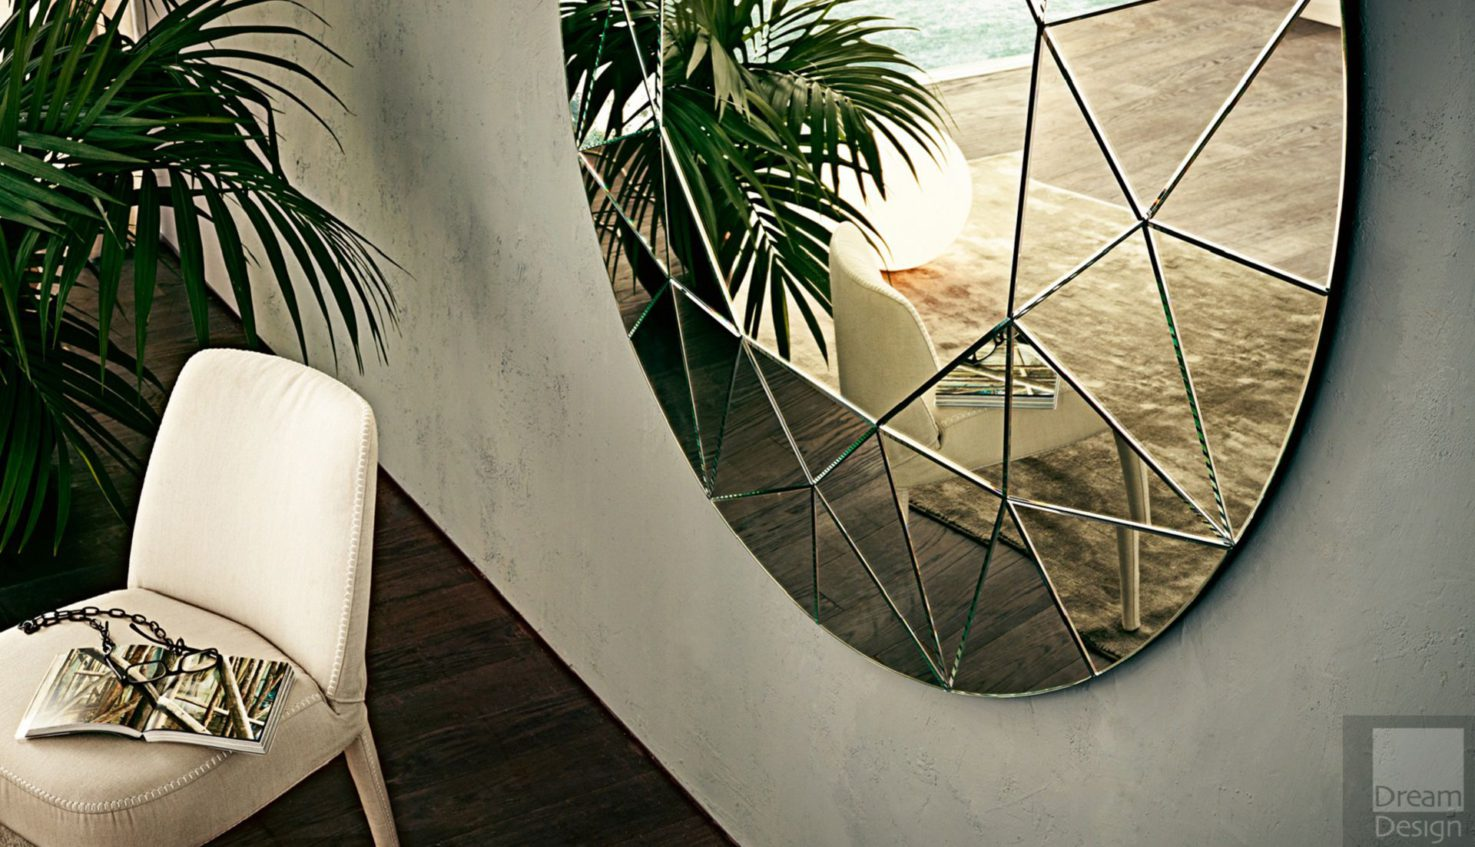 Gallotti & Radice Dream Mirror